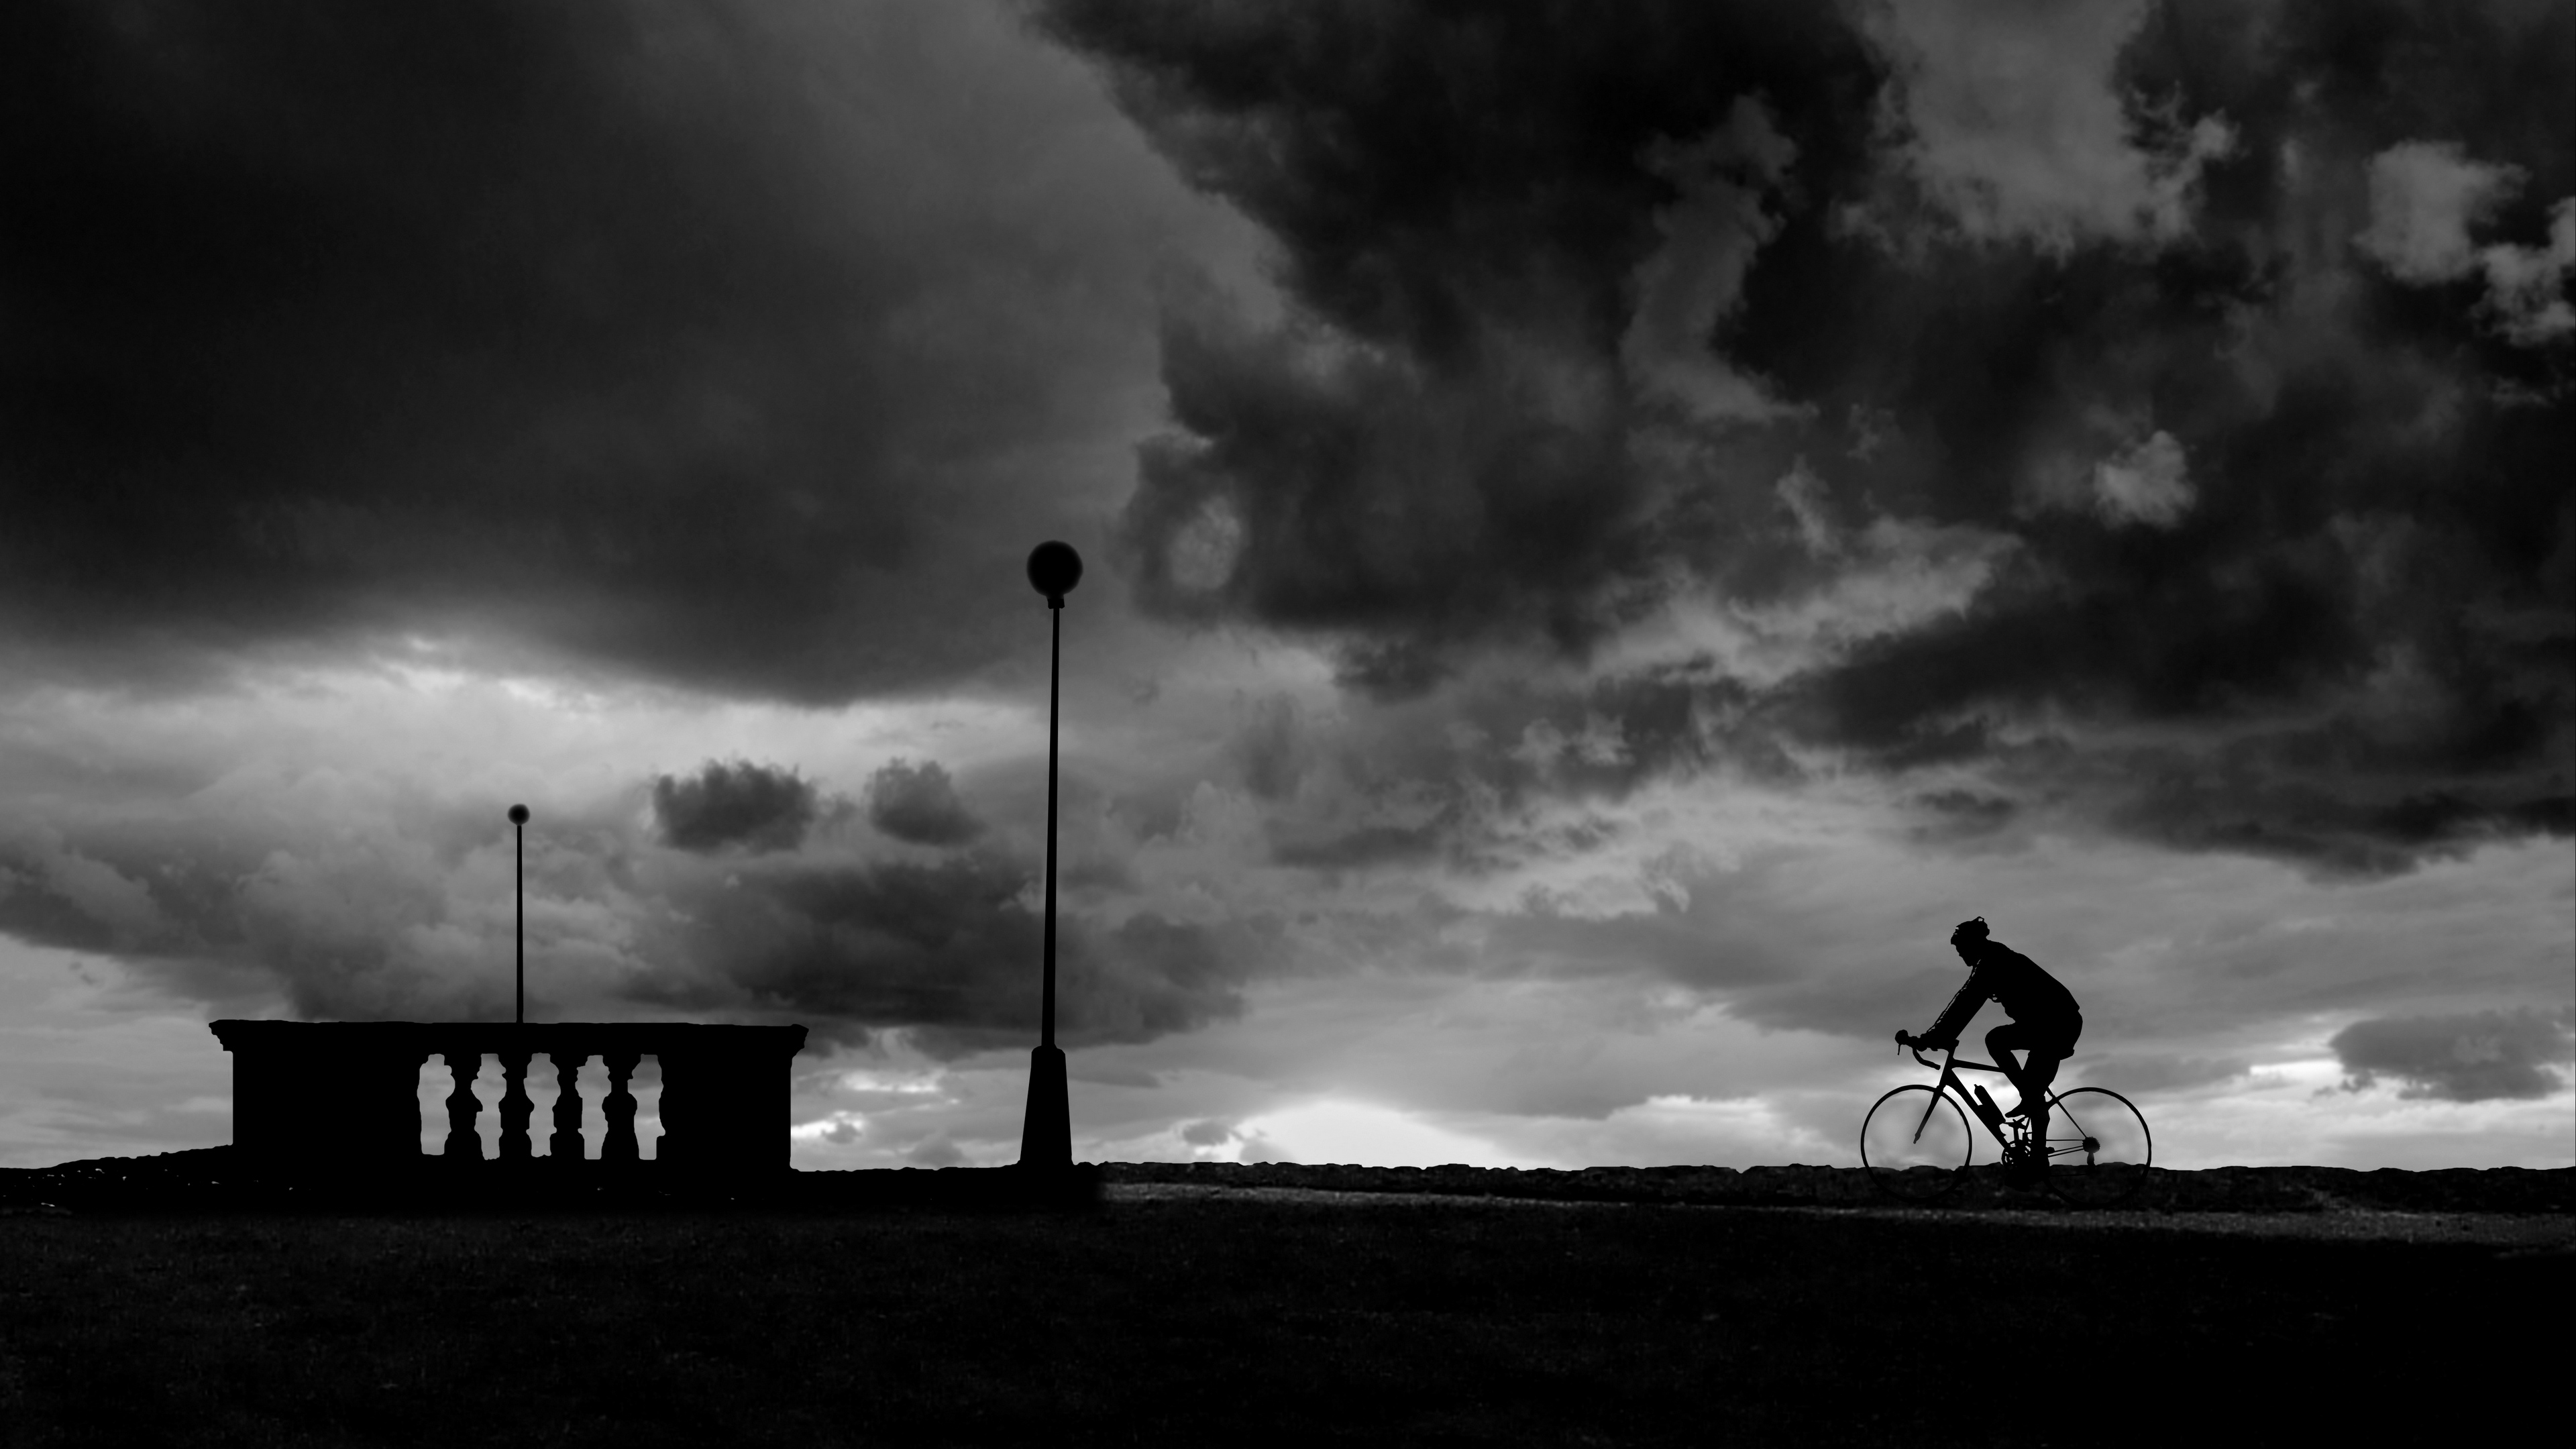 bicyclist silhouette bw clouds night 4k 1540576221 - bicyclist, silhouette, bw, clouds, night 4k - Silhouette, bw, bicyclist